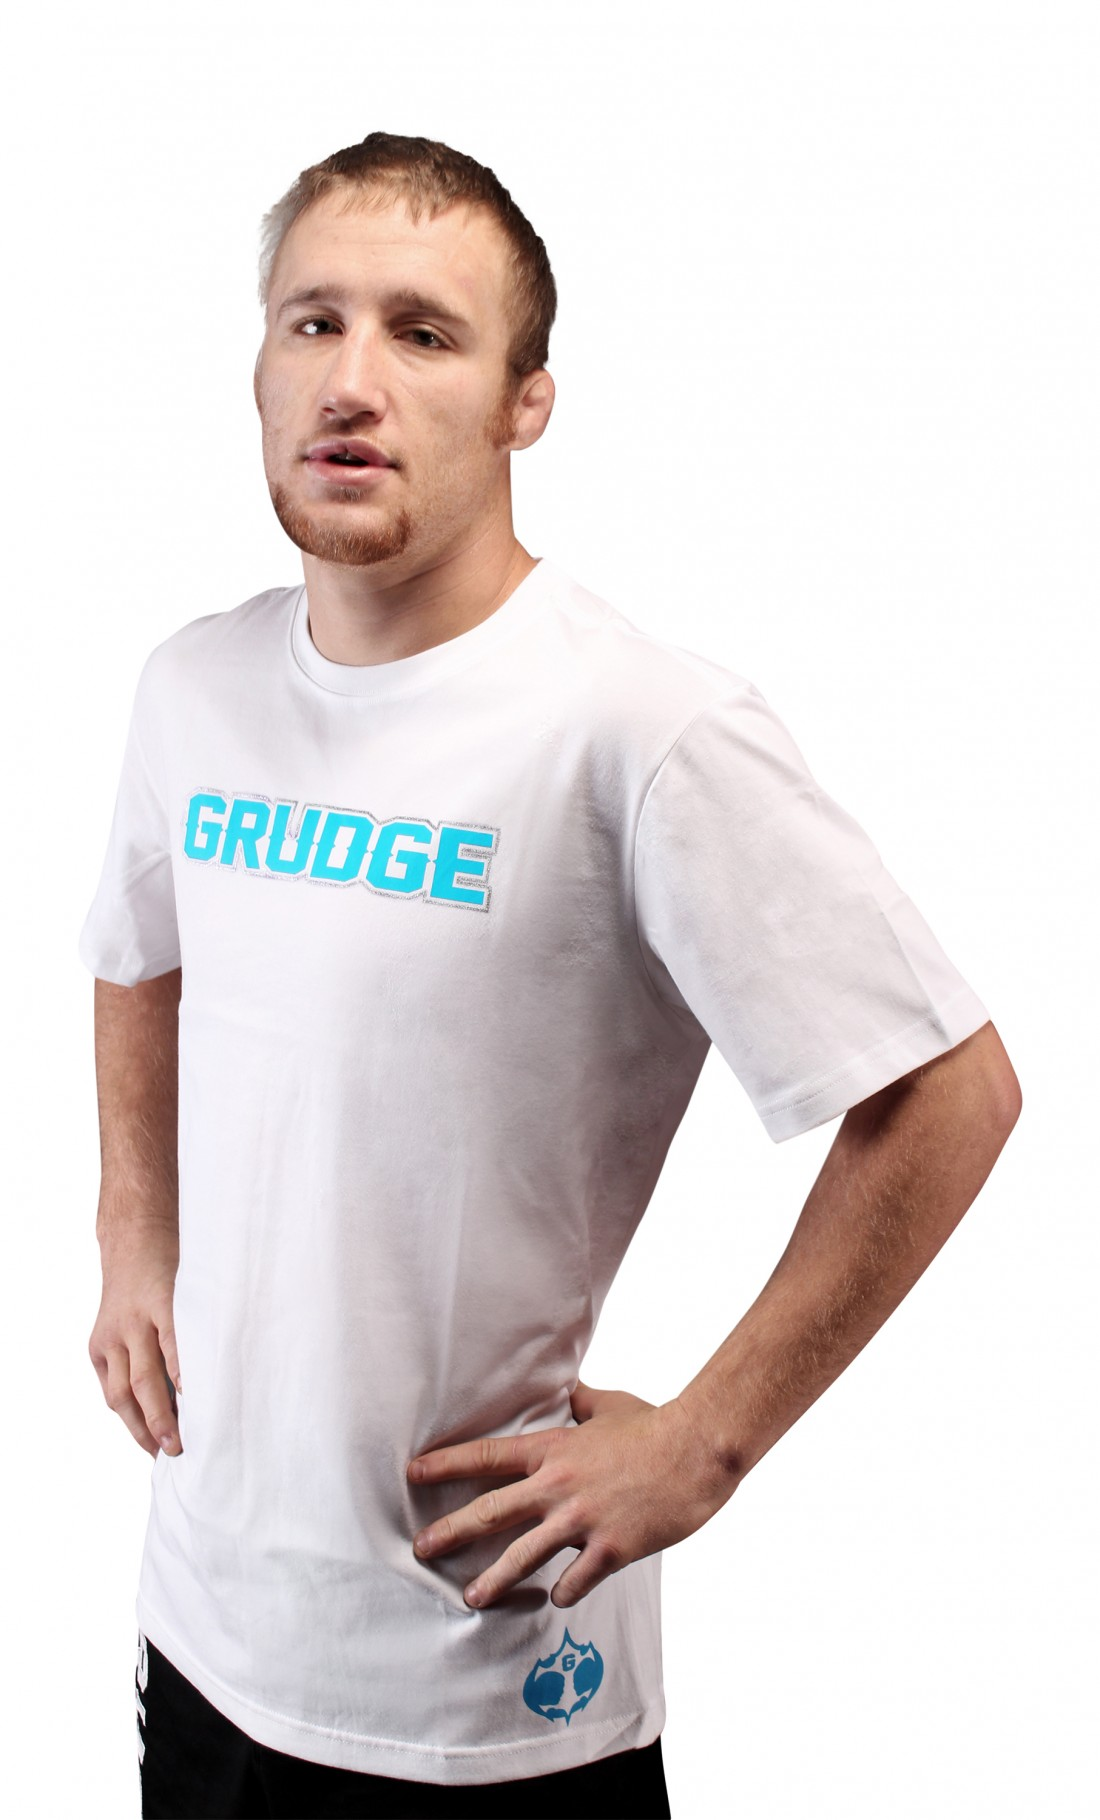 Grudge Performance Tee Bundle